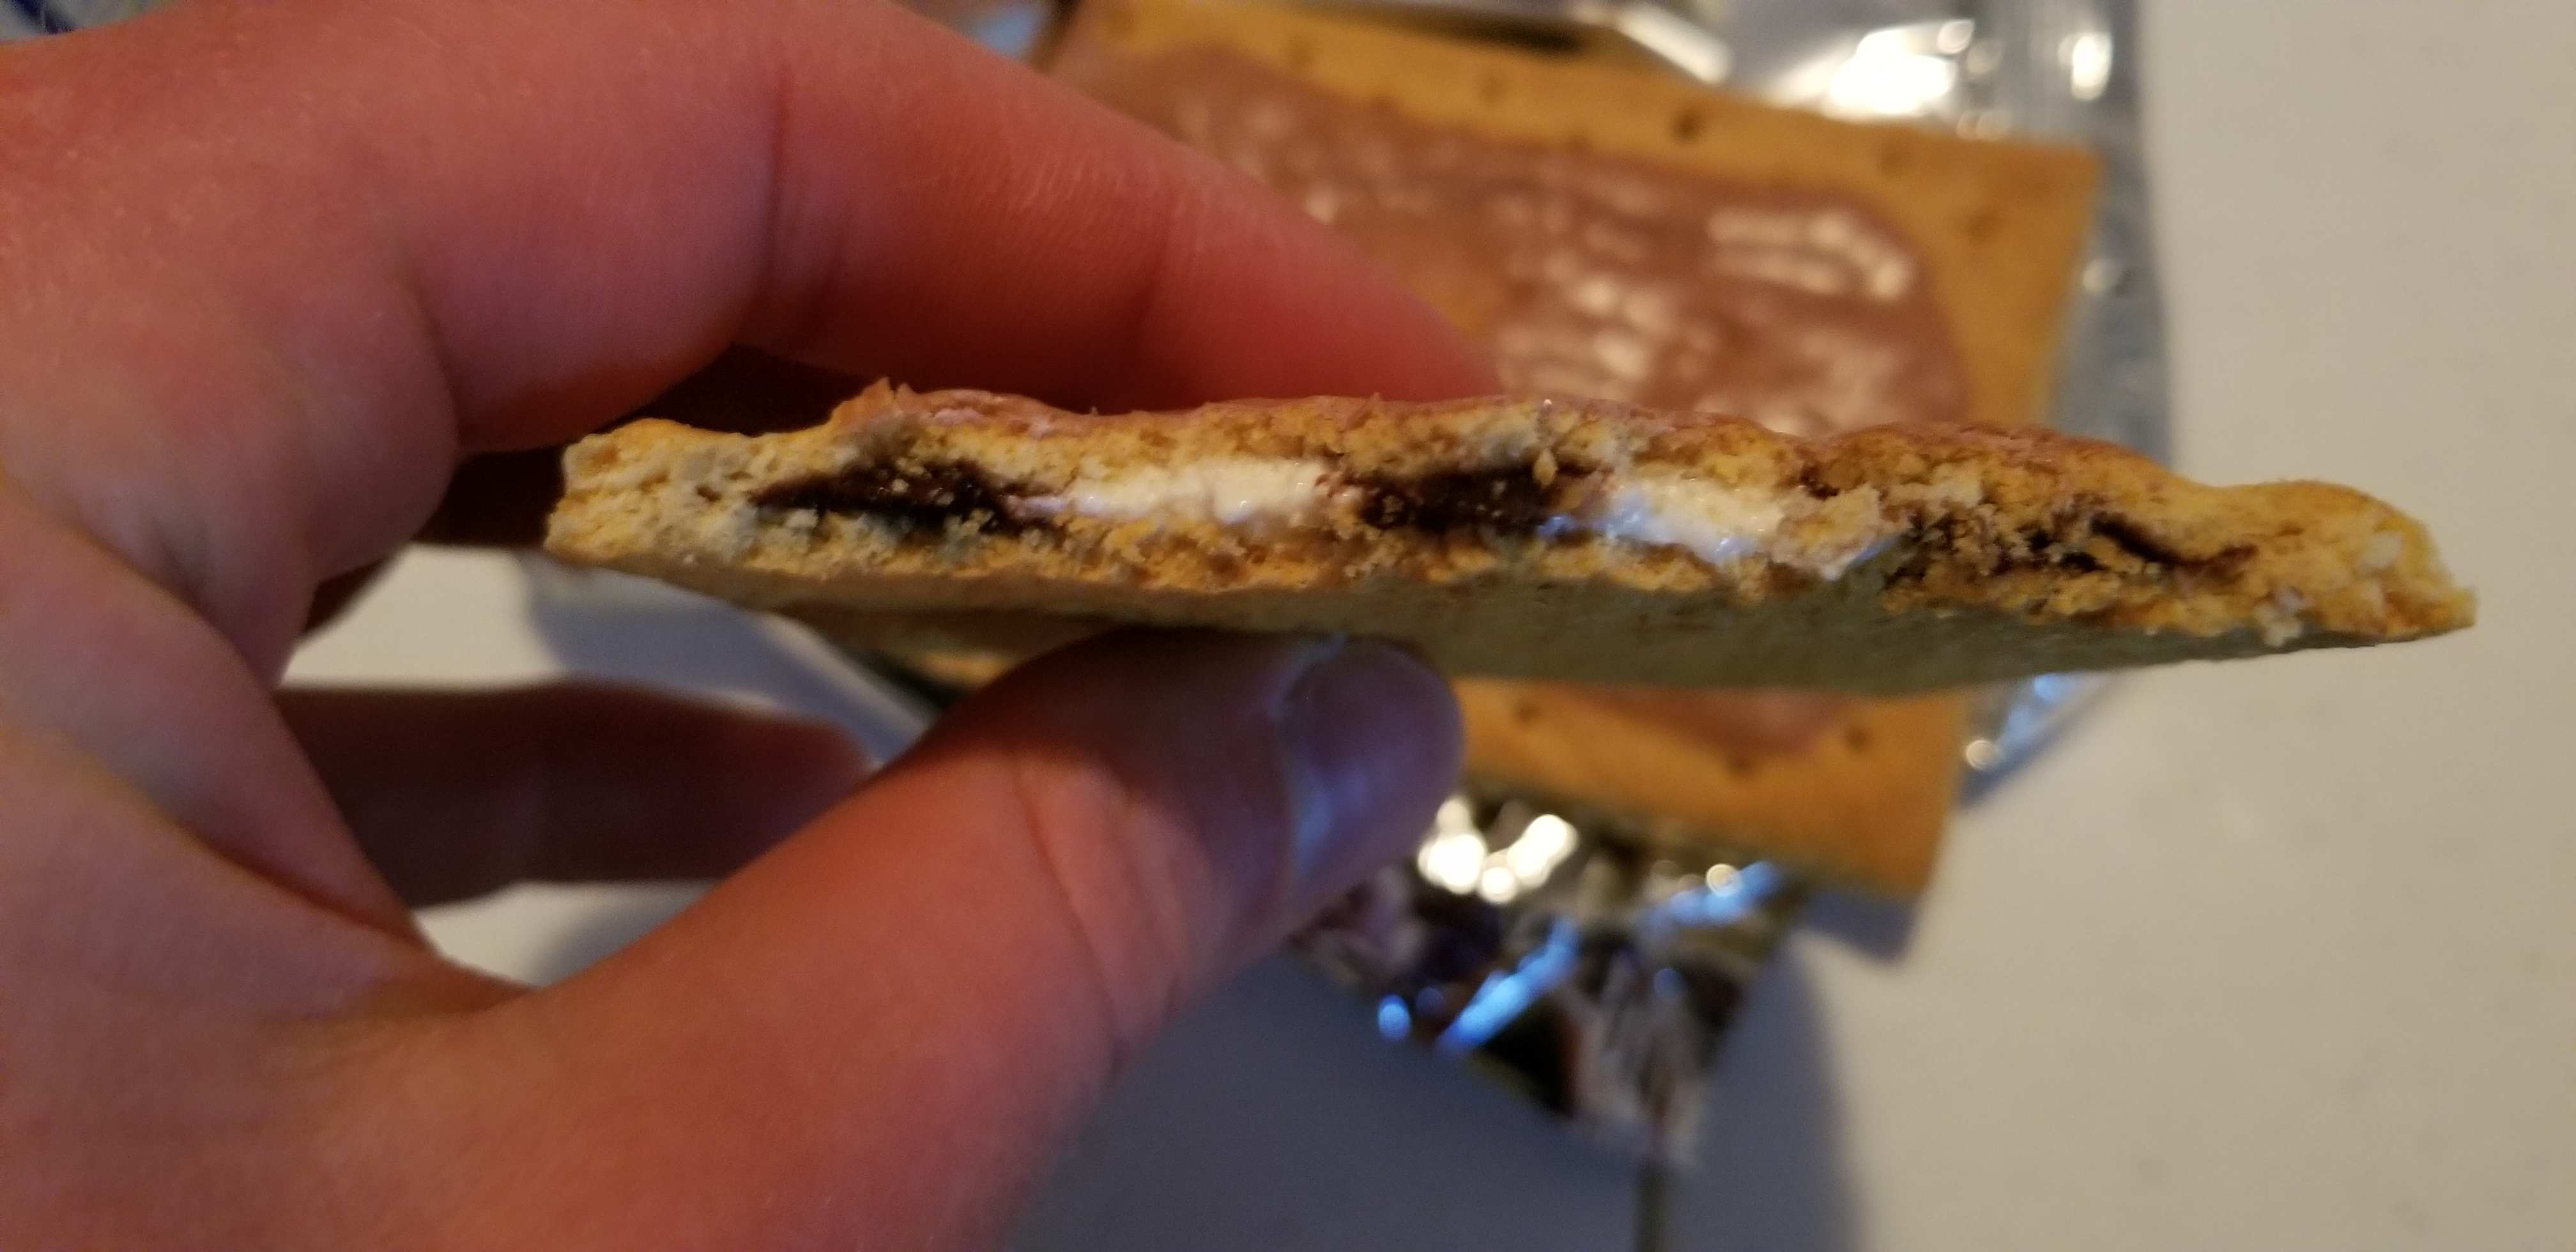 Picture of a s'mores pop-tart after taking a bite